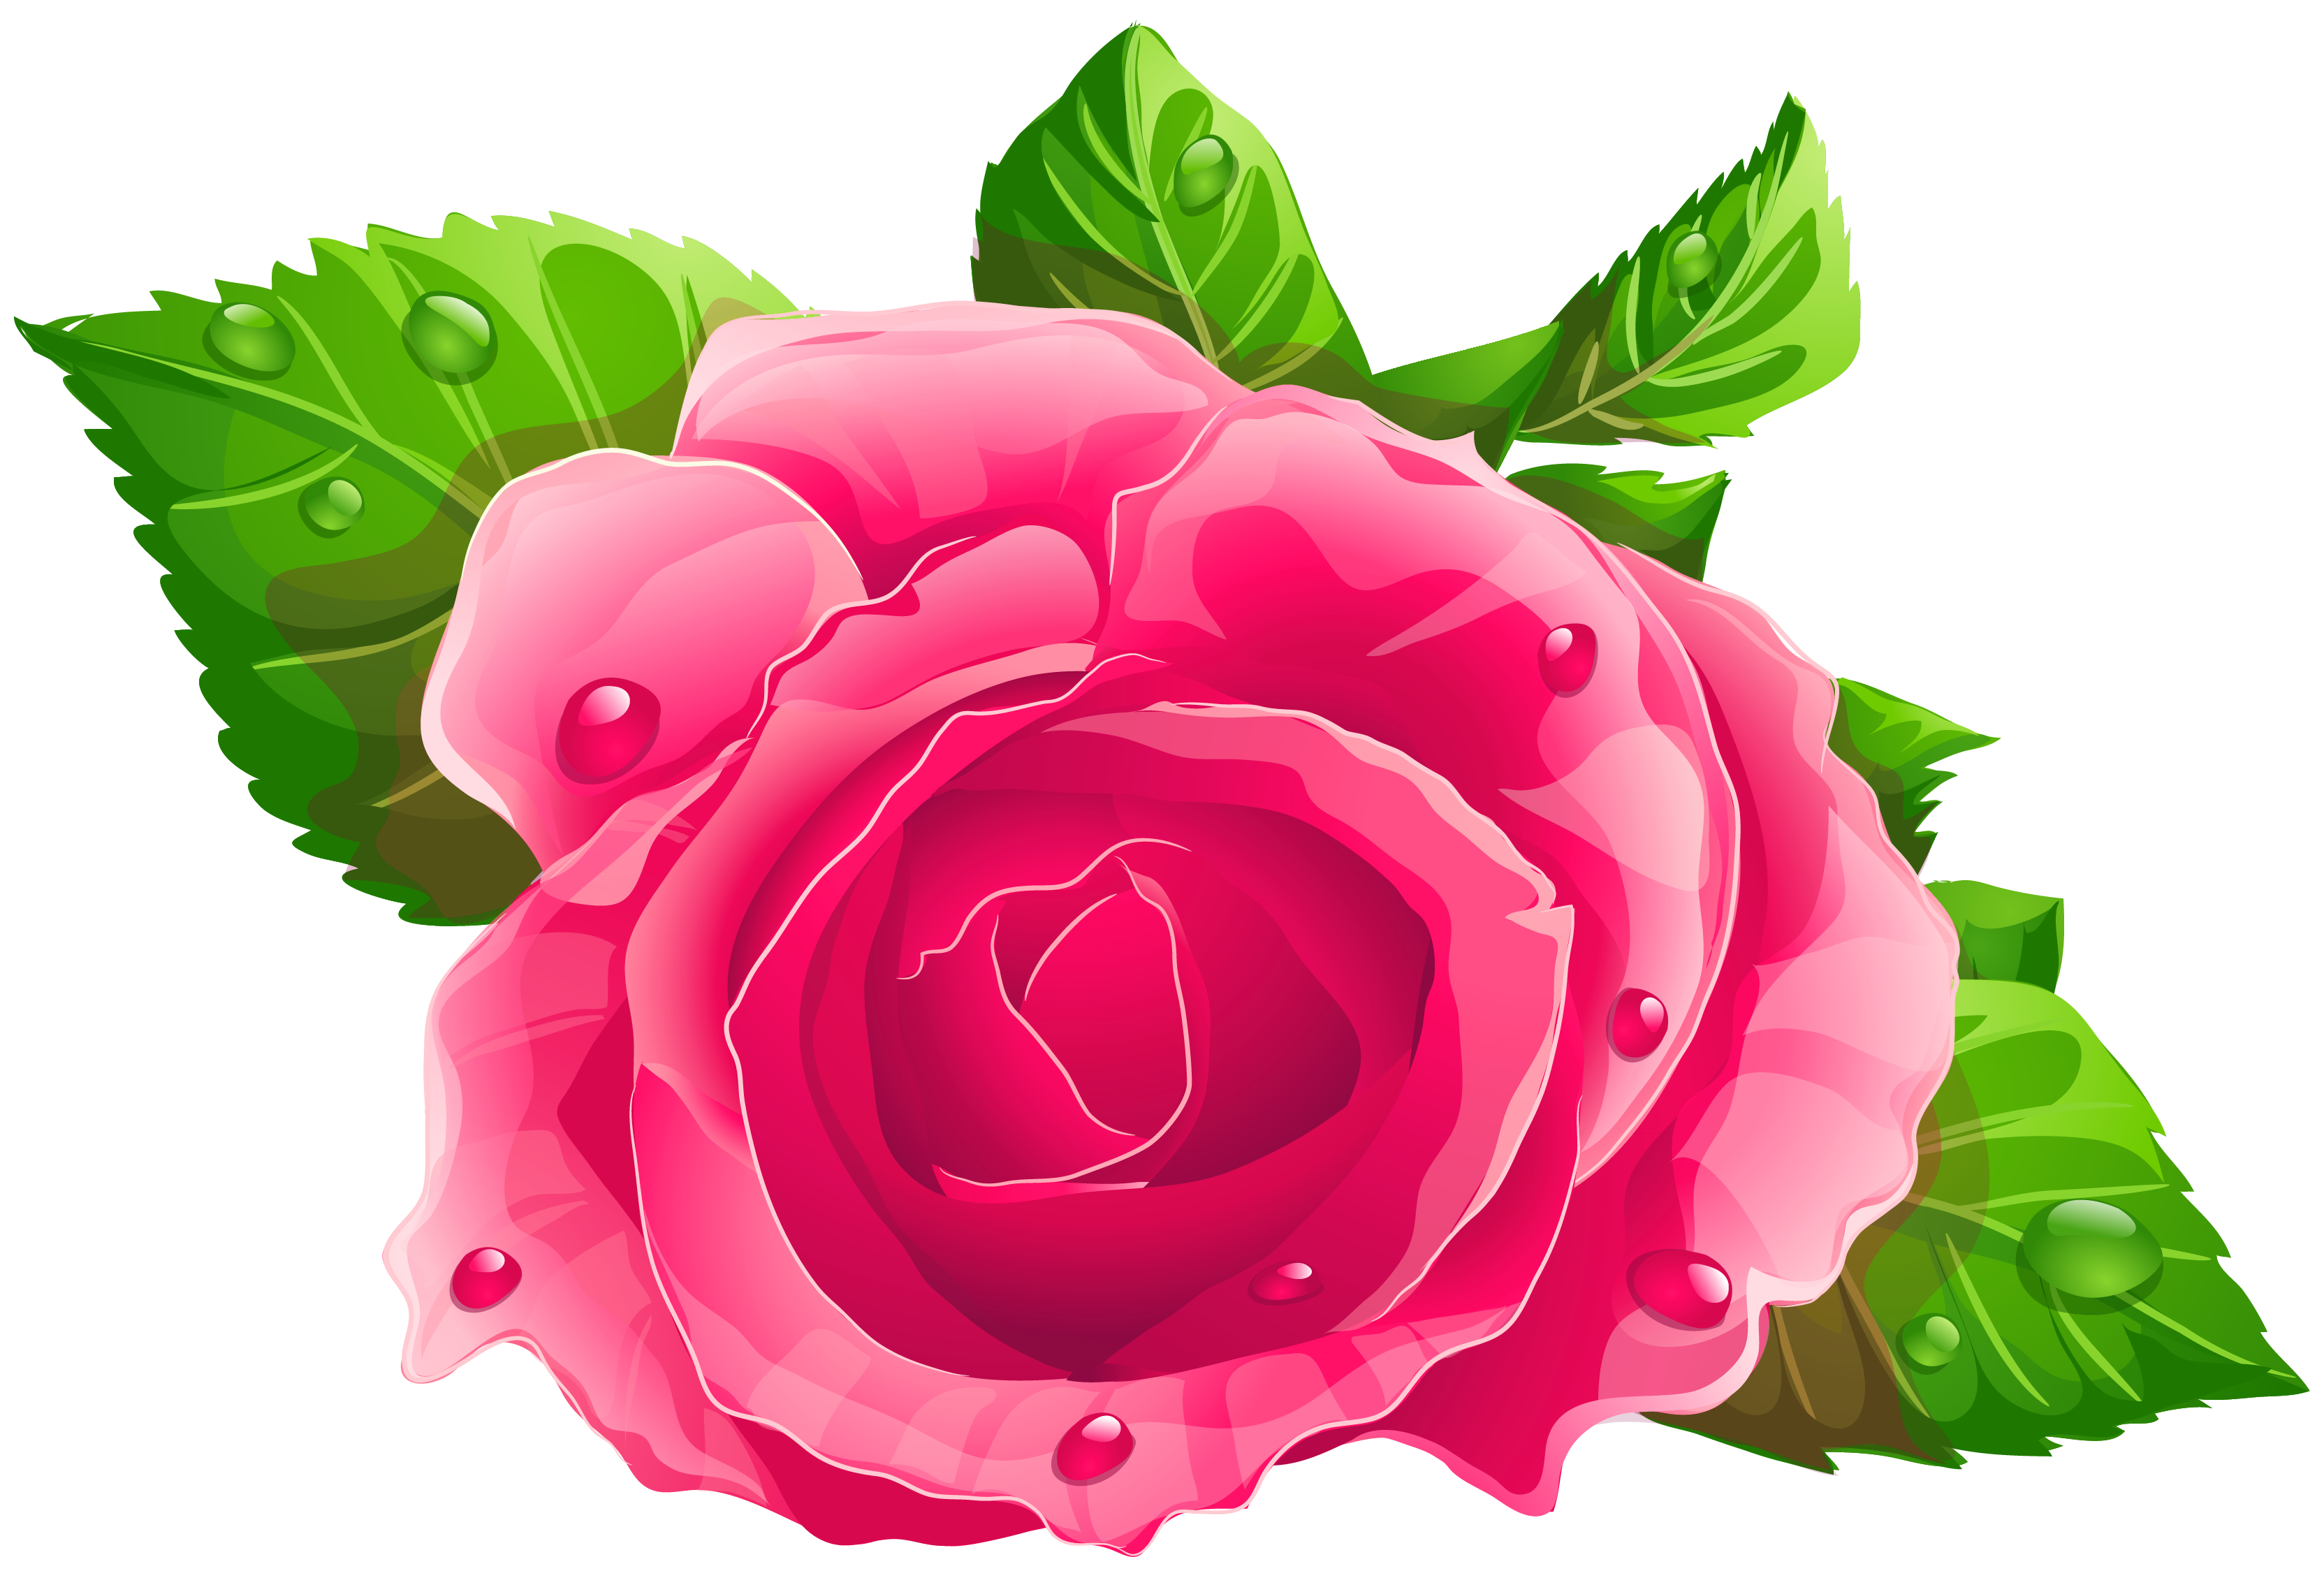 Pin By Solo Dios Basta On Cute Pink Rose Png Rose Clipart Flowers